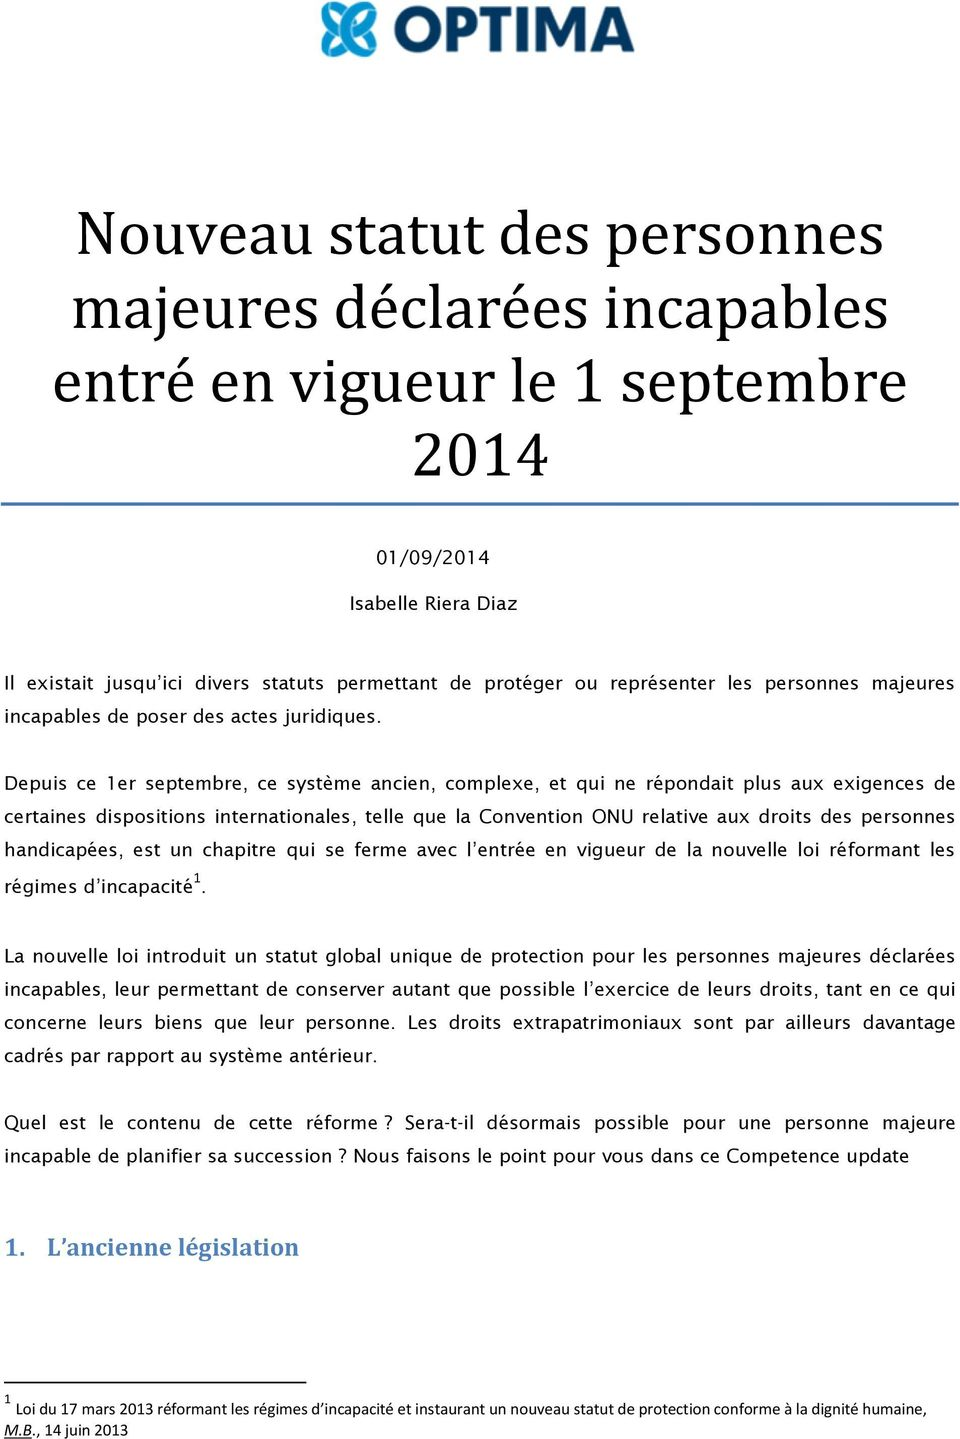 Depuis ce 1er septembre, ce système ancien, complexe, et qui ne répondait plus aux exigences de certaines dispositions internationales, telle que la Convention ONU relative aux droits des personnes